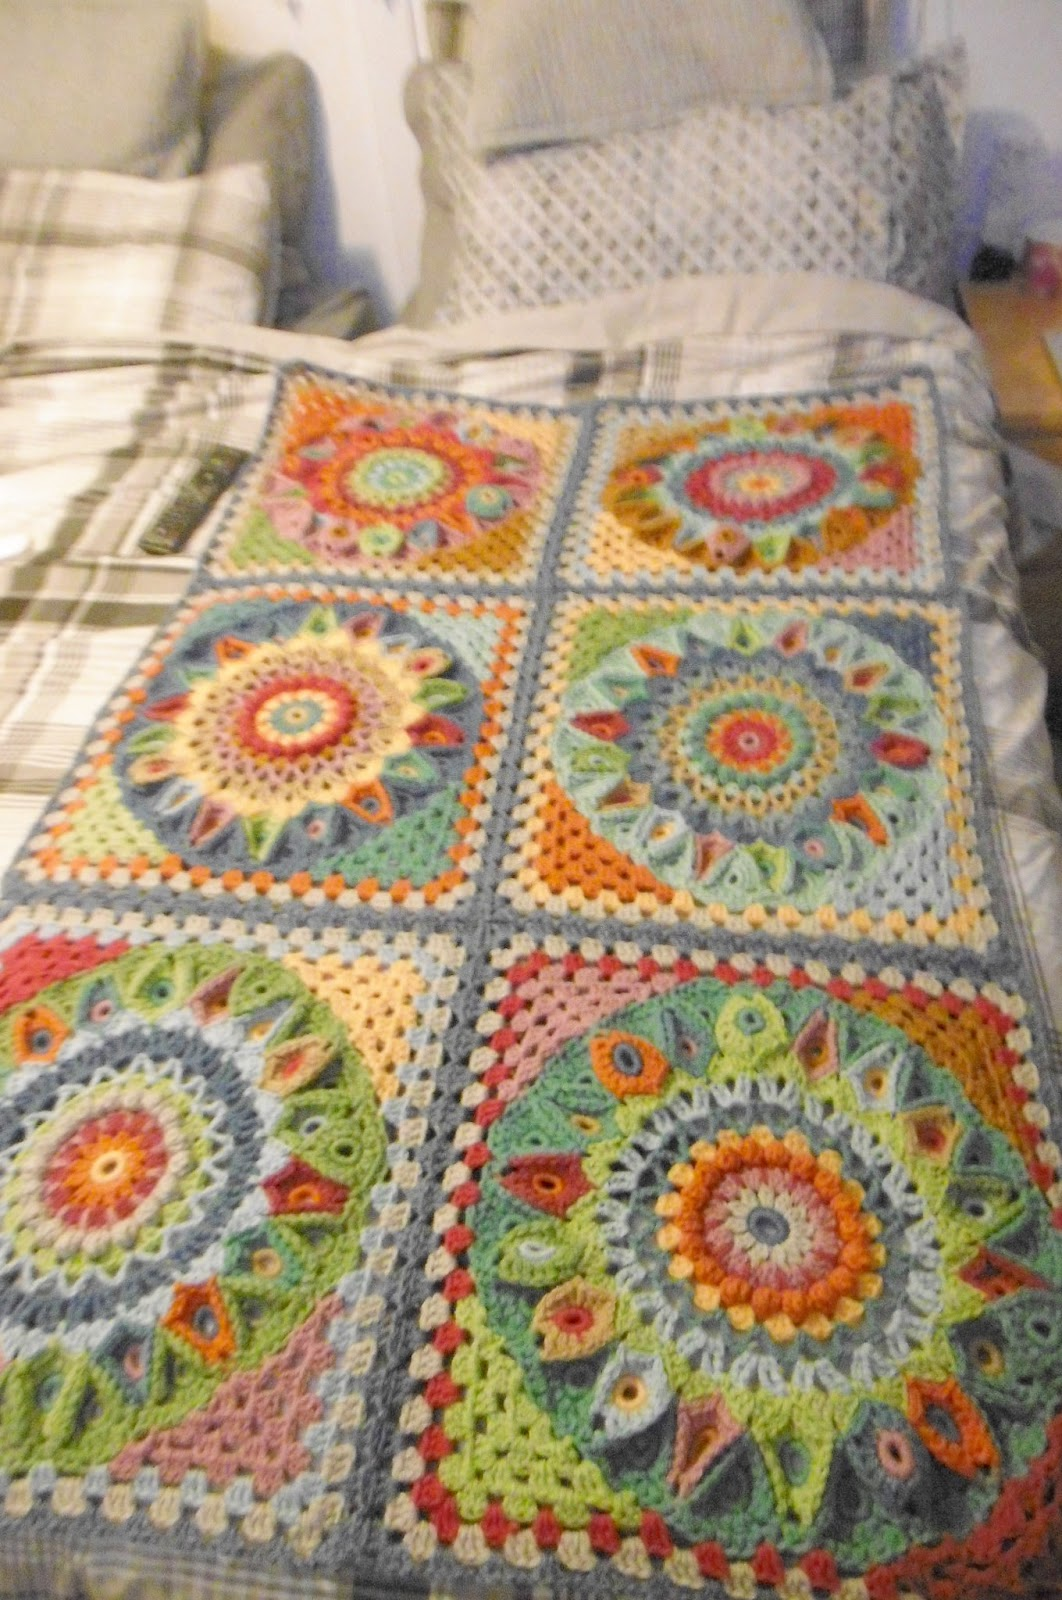 Susan pinner spinning top blanket cal 2017 all in one post for Html tr border